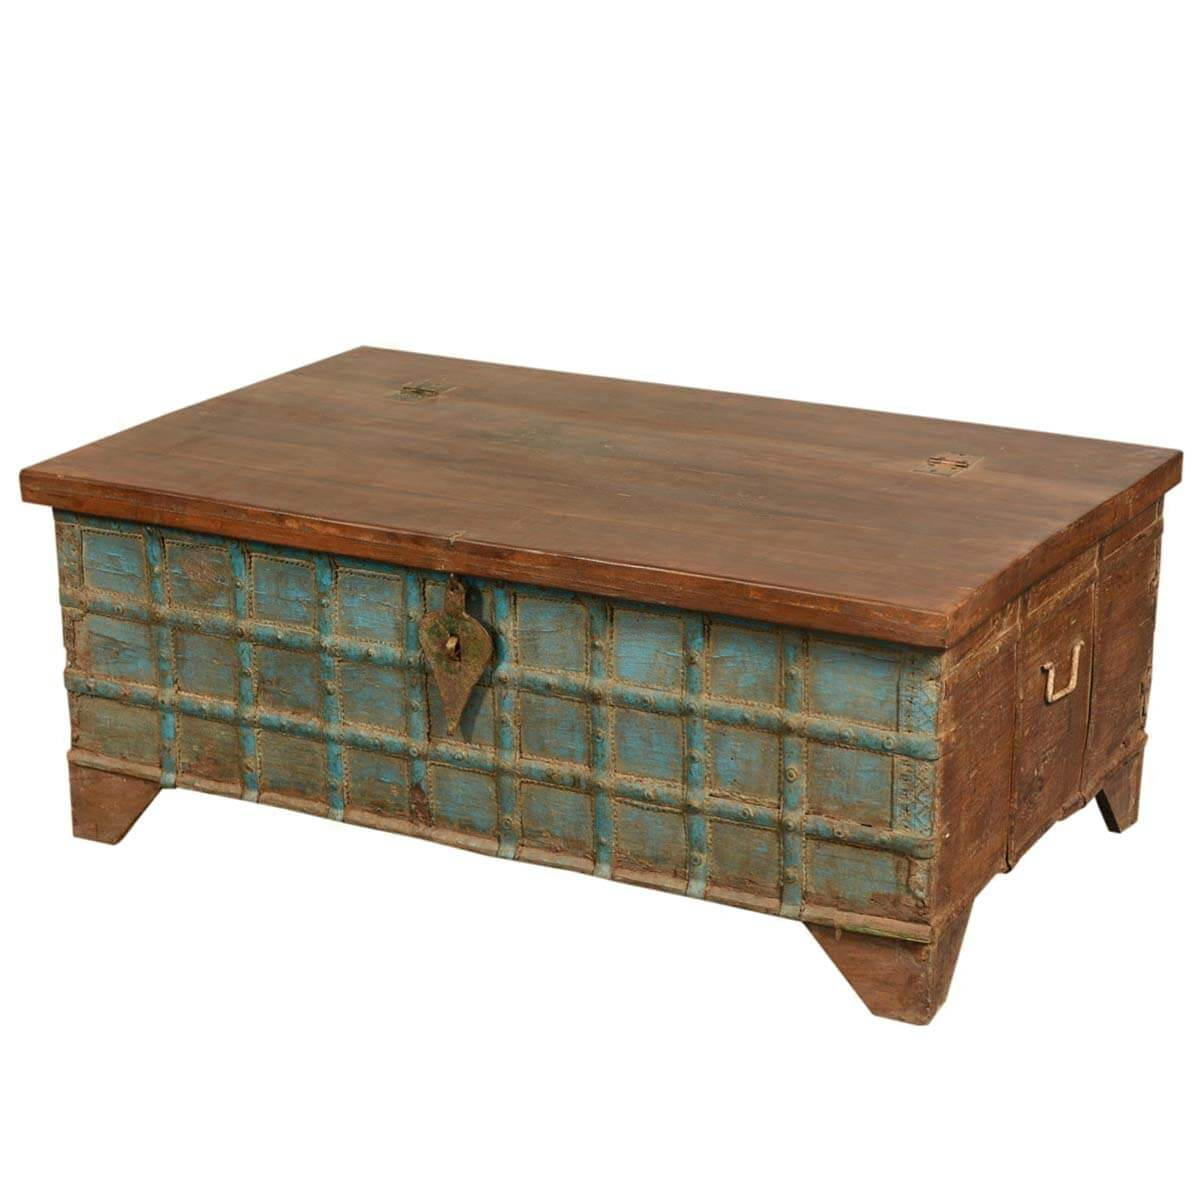 Blue captain 39 s stash reclaimed wood coffee table storage chest Coffee table chest with storage